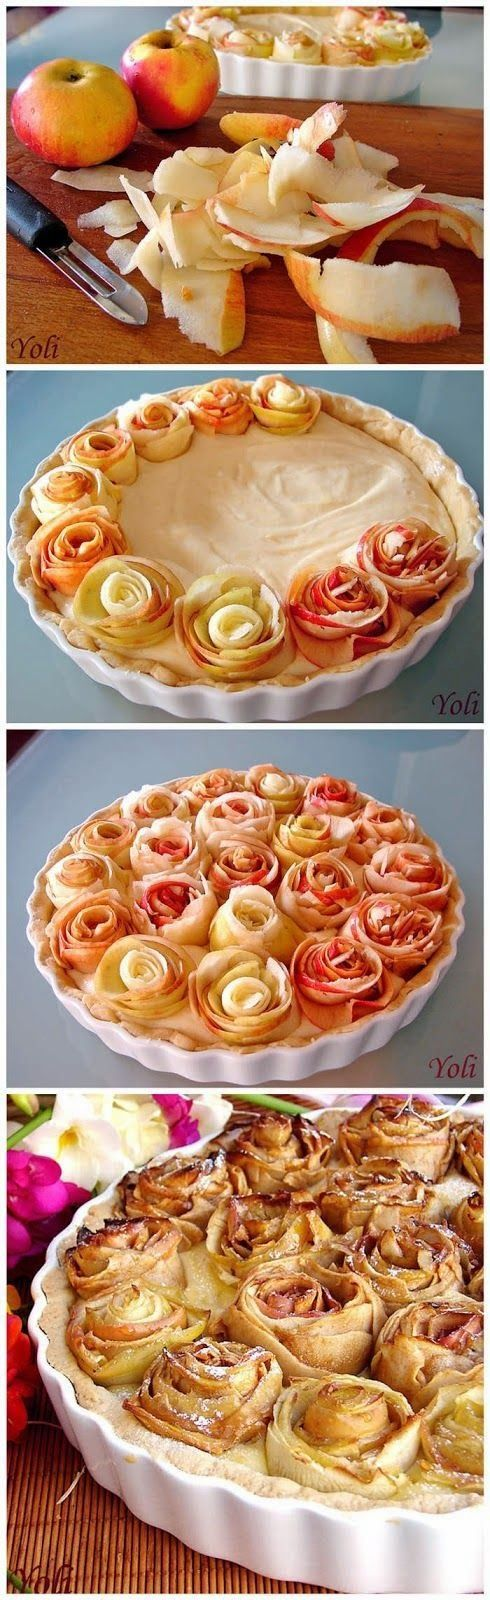 Apple pie with roses. I so want to make this! Beautiful and delicious!